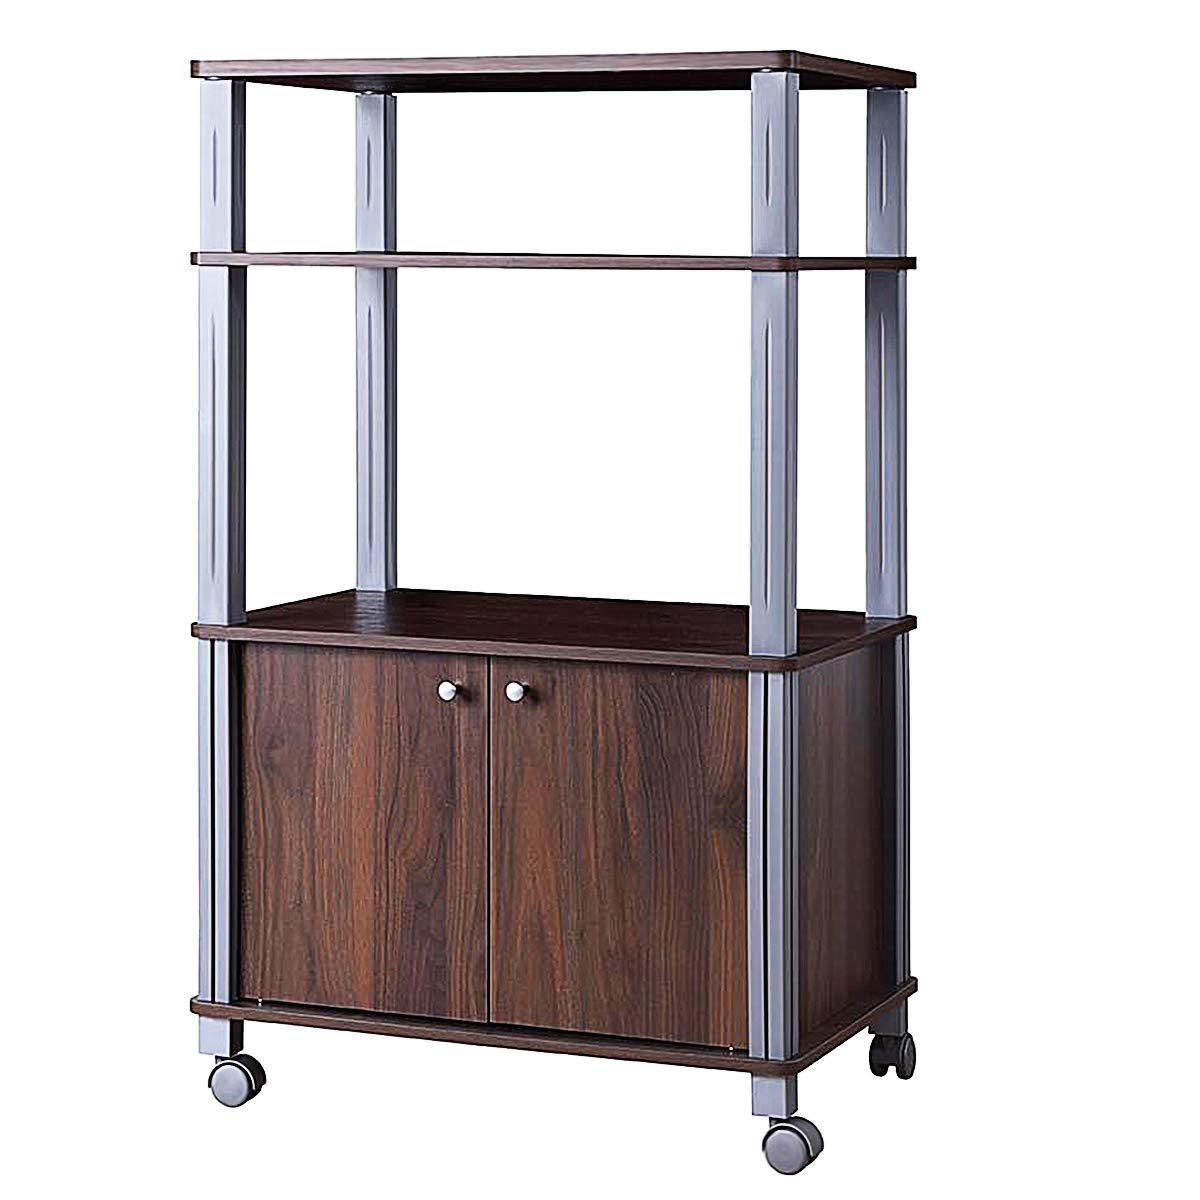 Giantex Rolling Kitchen Baker's Rack Microwave Oven Stand Utility Shelf on Wheels Storage Cart Spice Workstation Organizer with 2-Tier Shelf and Cabinet, Kitchen or Dining Room Furnitu (Walnut) by Giantex (Image #2)